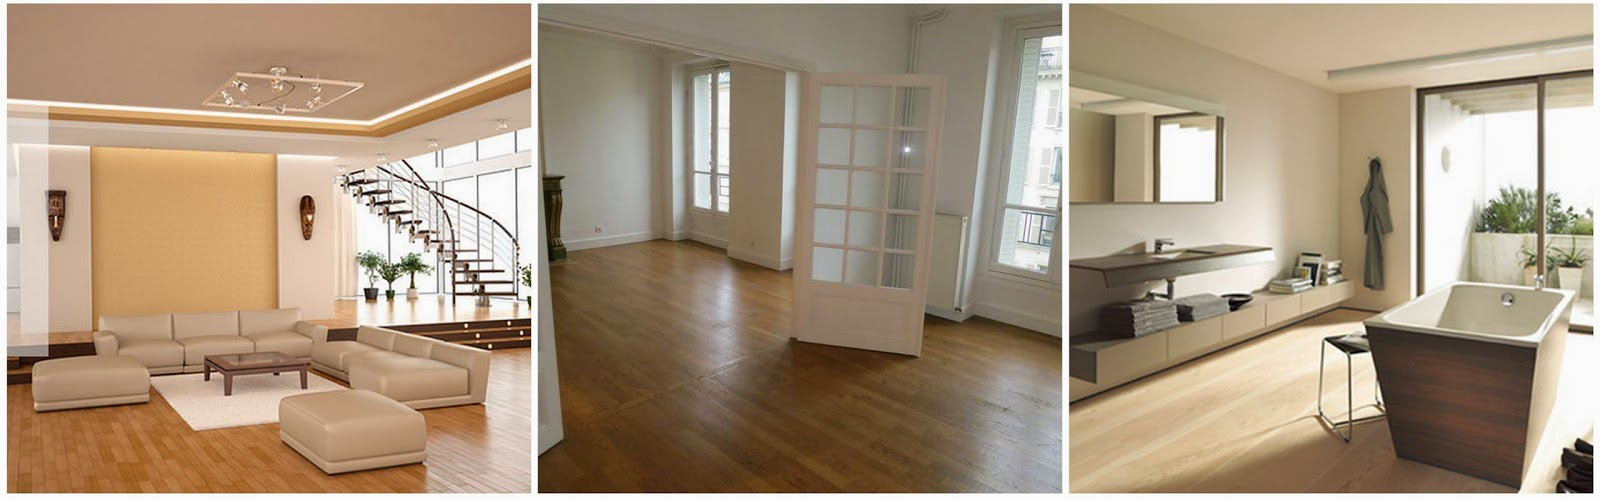 Travaux appartement 92230 gennevilliers